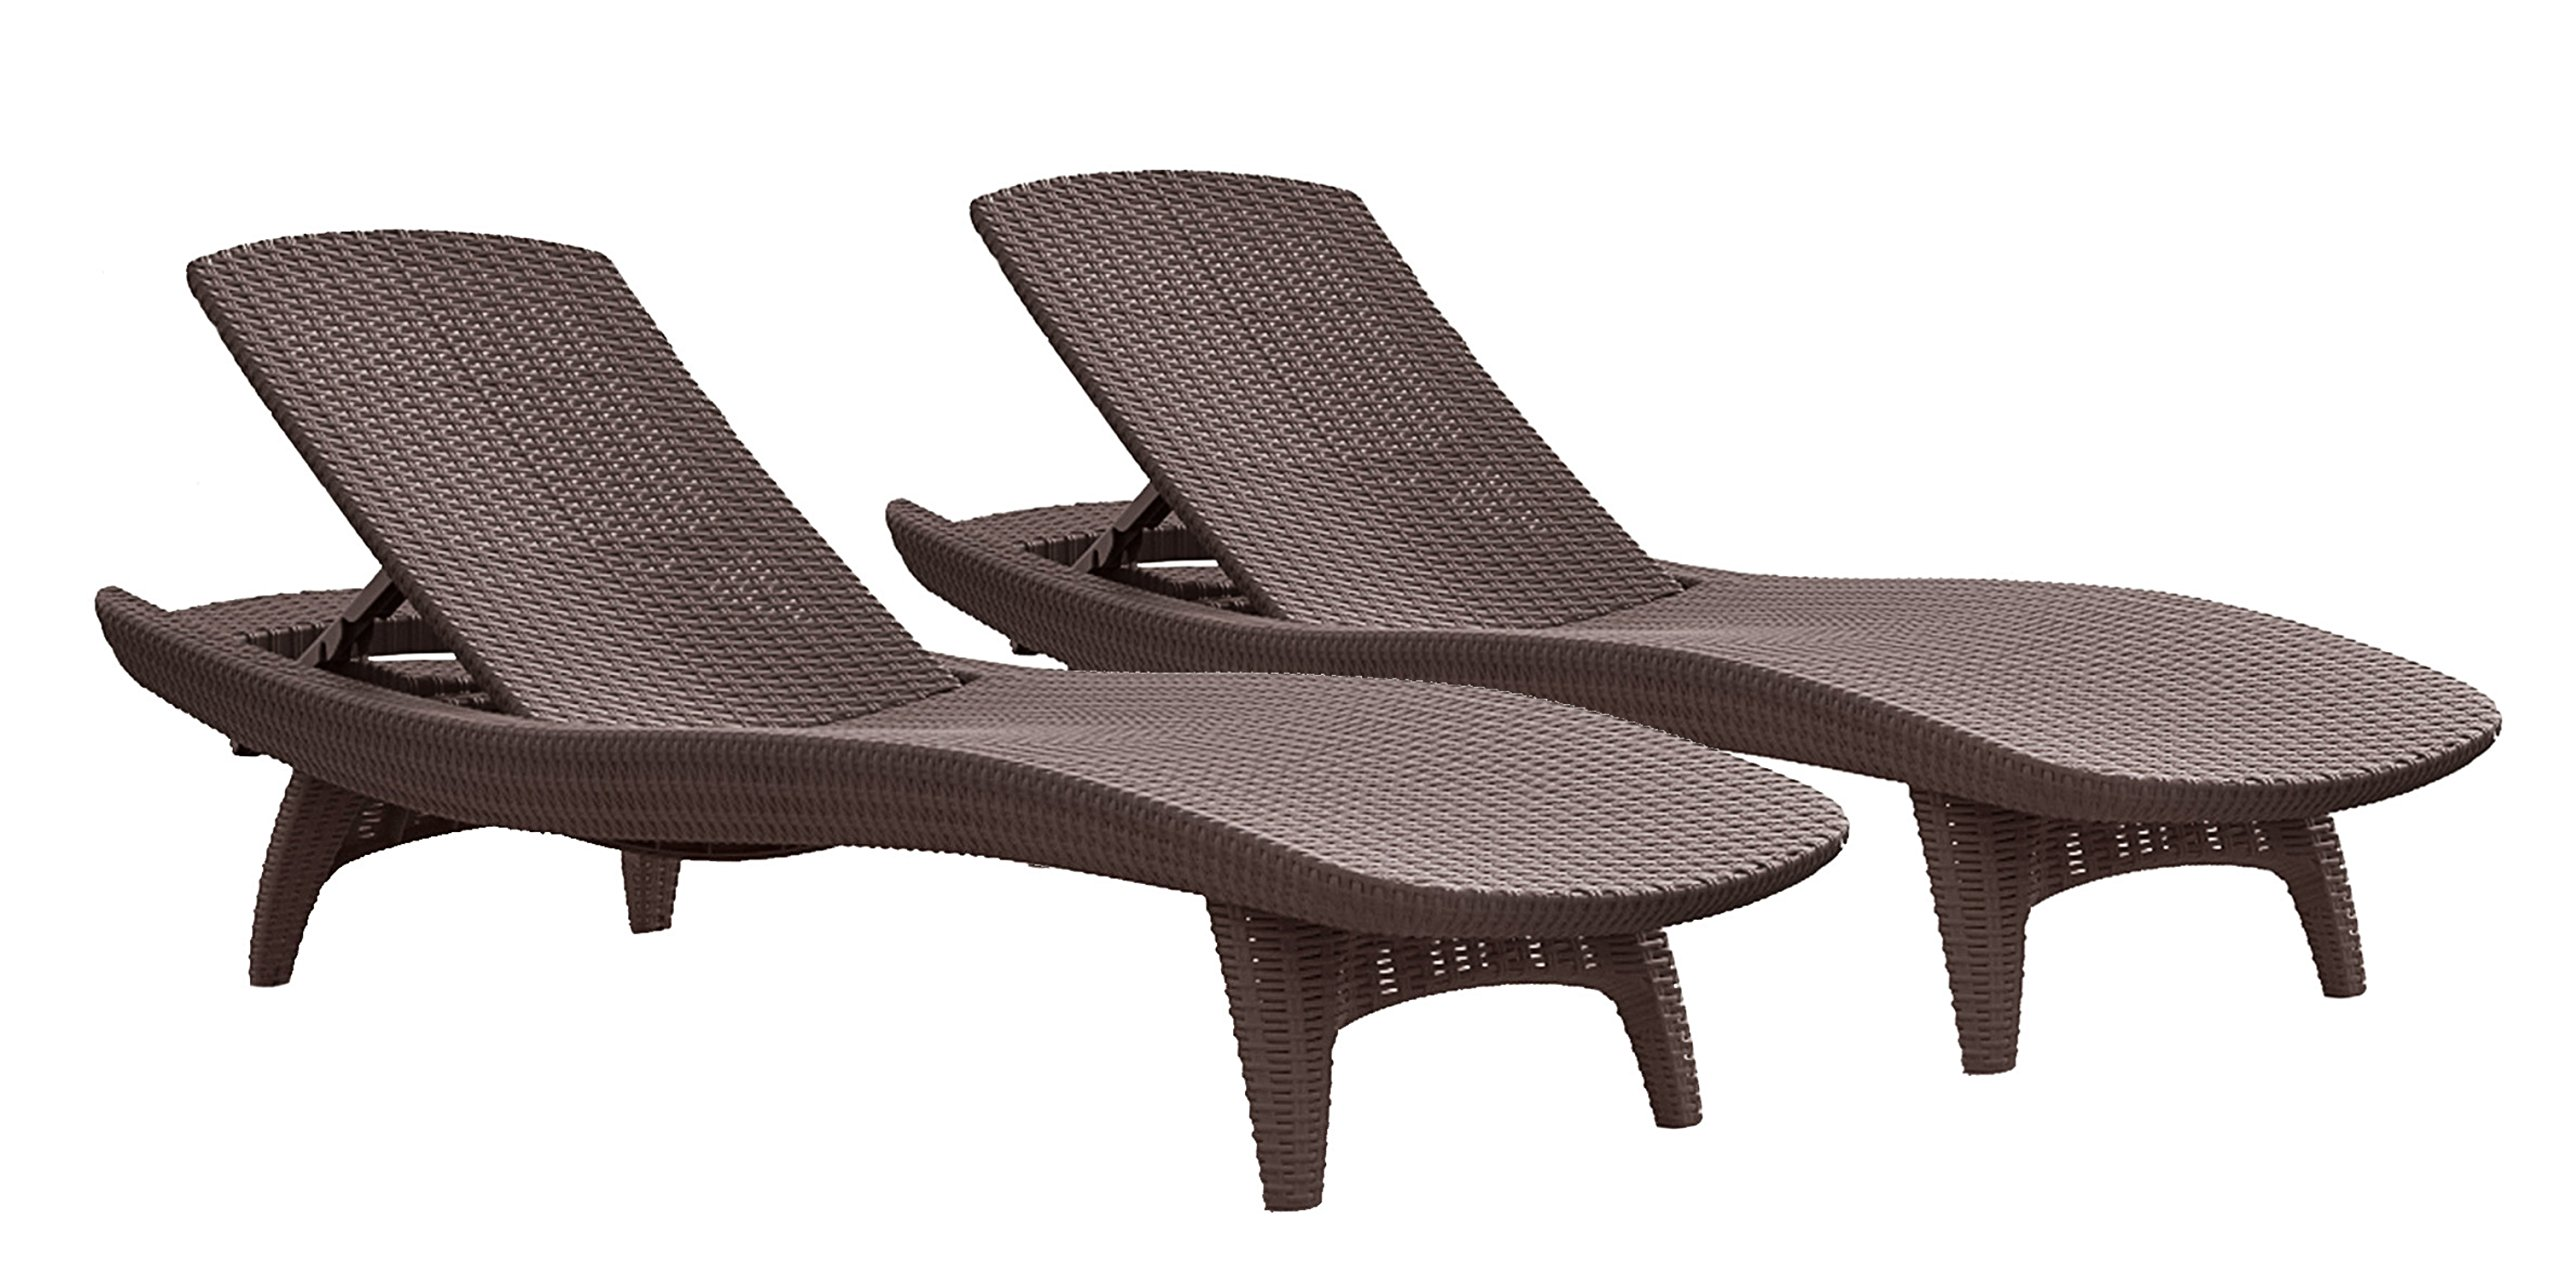 Keter Set Of 2 Pacific Sun Lounge Outdoor Chaise Pool Chairs With Resin Rattan Look And Adjustable Back Brown Buy Online In Congo At Congo Desertcart Com Productid 70401653